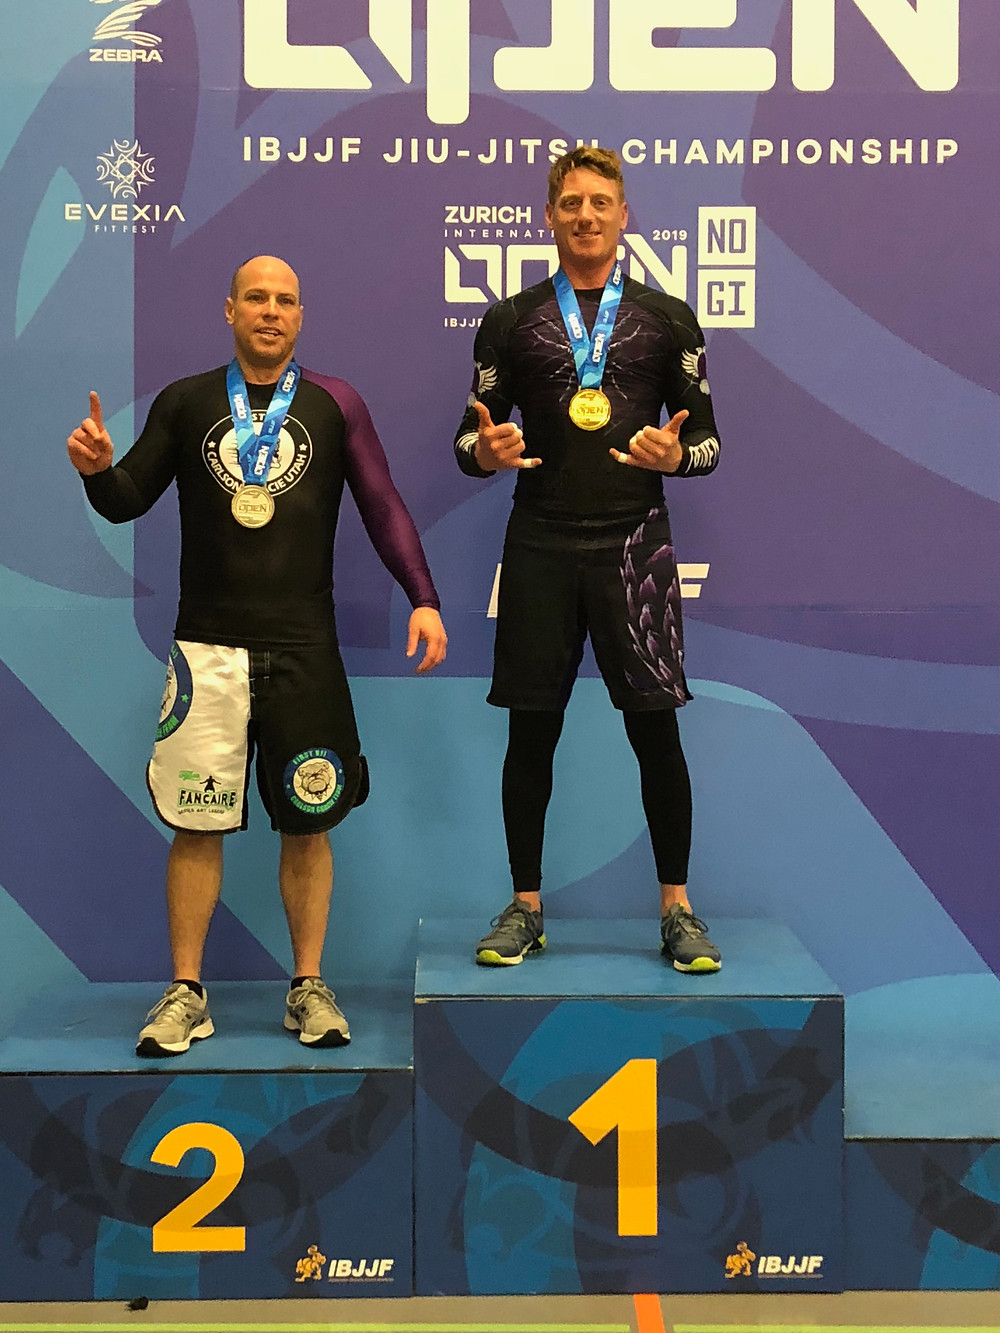 LUKE RENNIE - WINNING SEVERAL GOLD MEDALS AT THE IBJJF ZURICH OPEN 2019